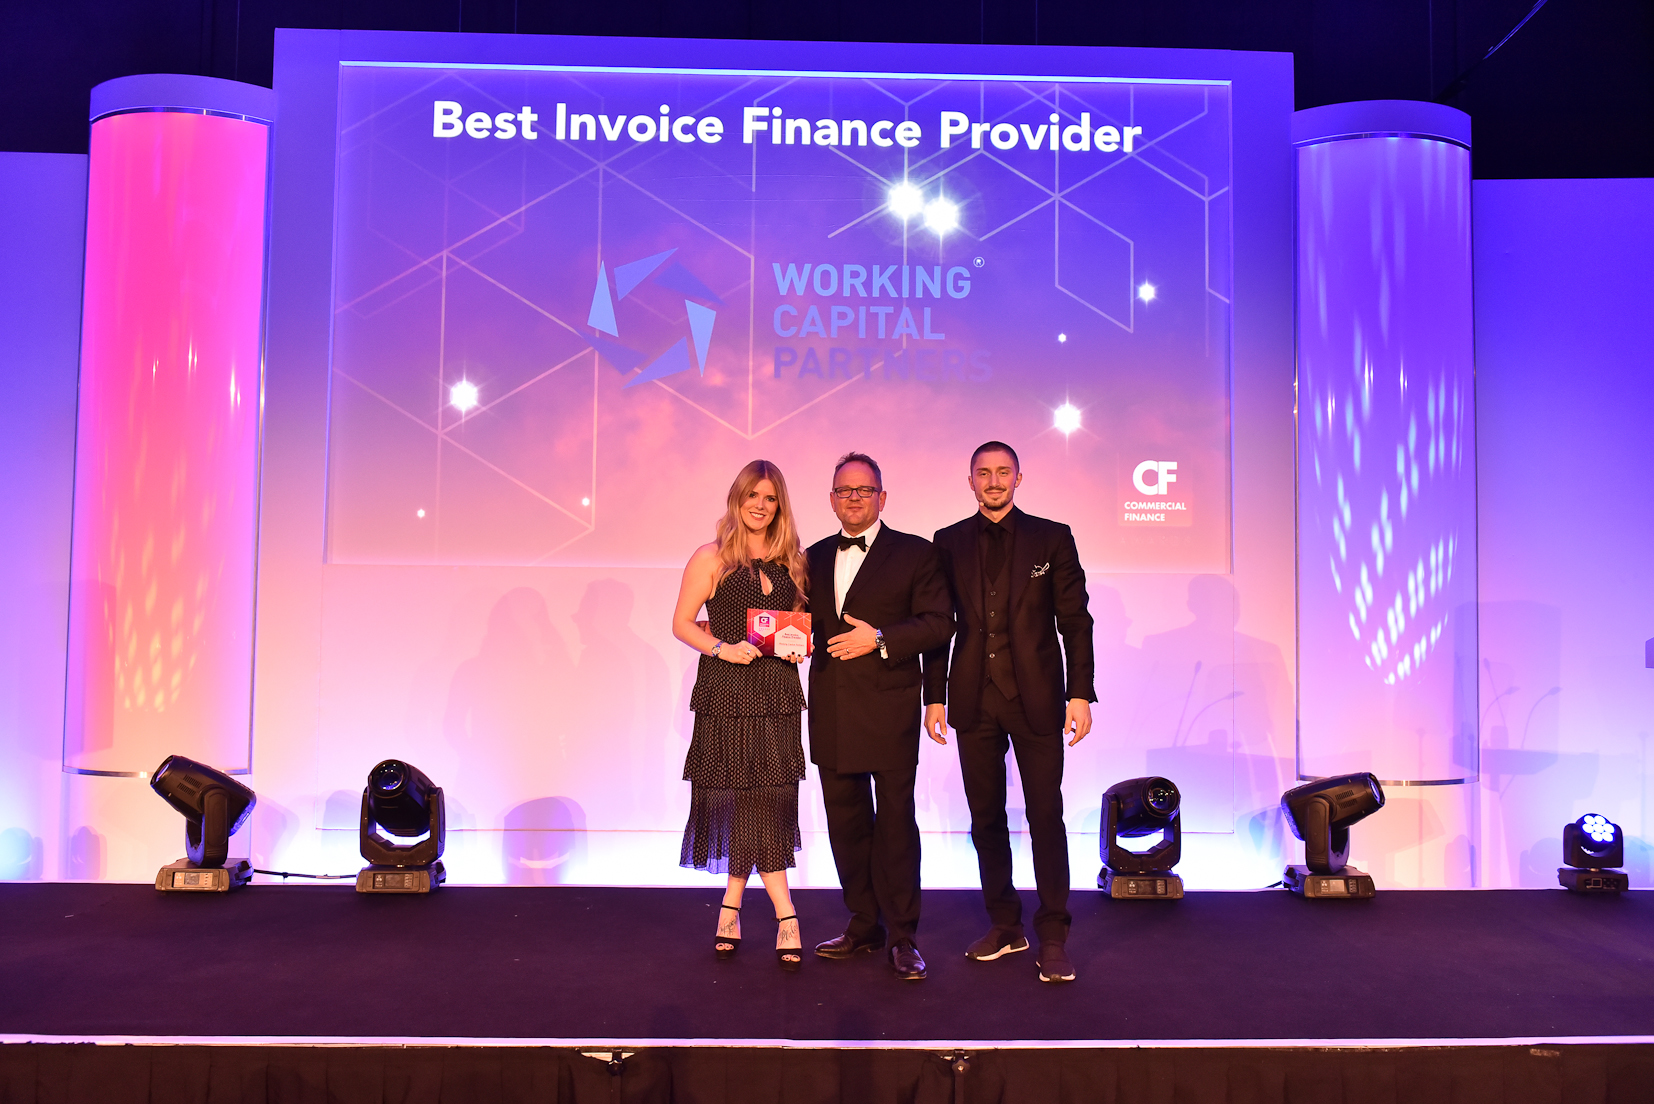 Comm Fin Awards 7 Best Invoice Finance Provider